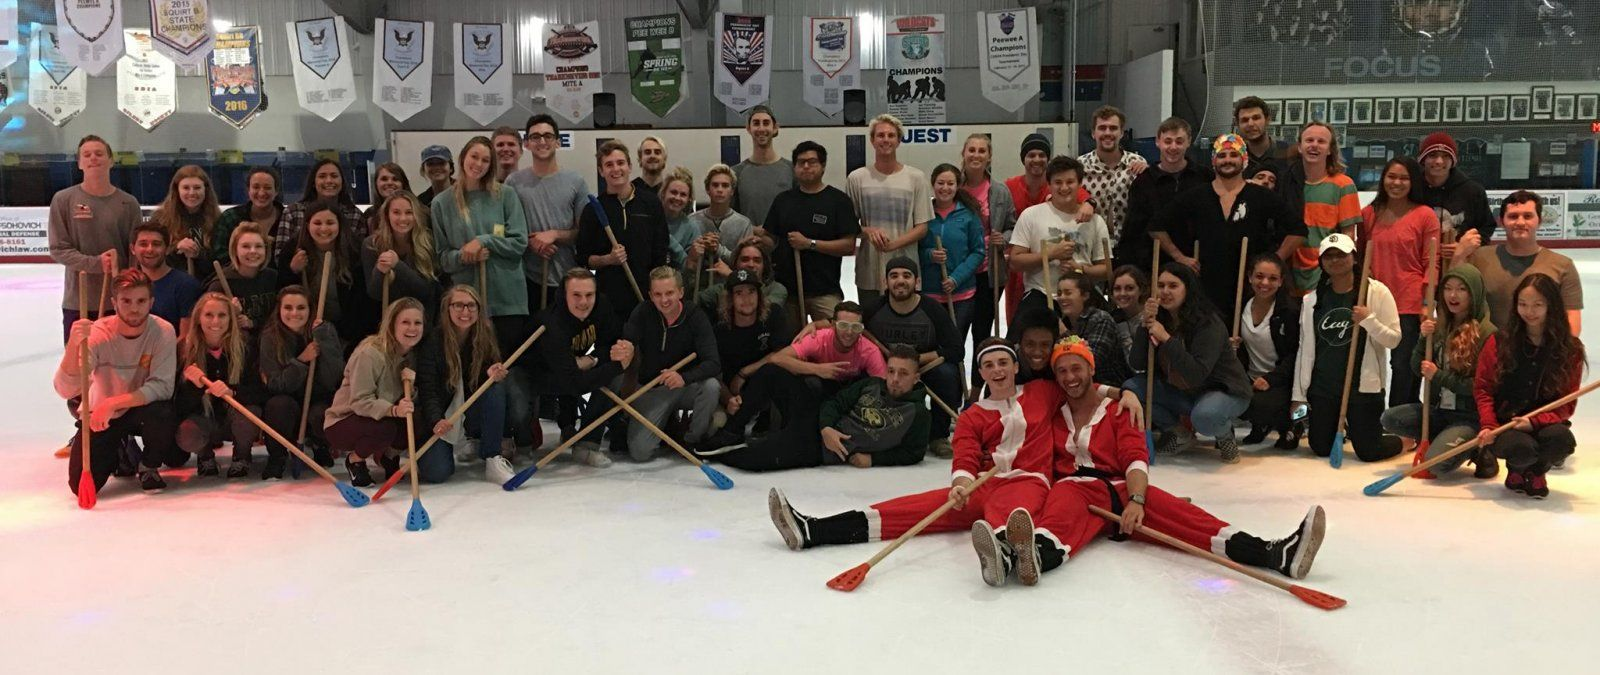 A large group of PLNU transfer students play broomball at a TAG event